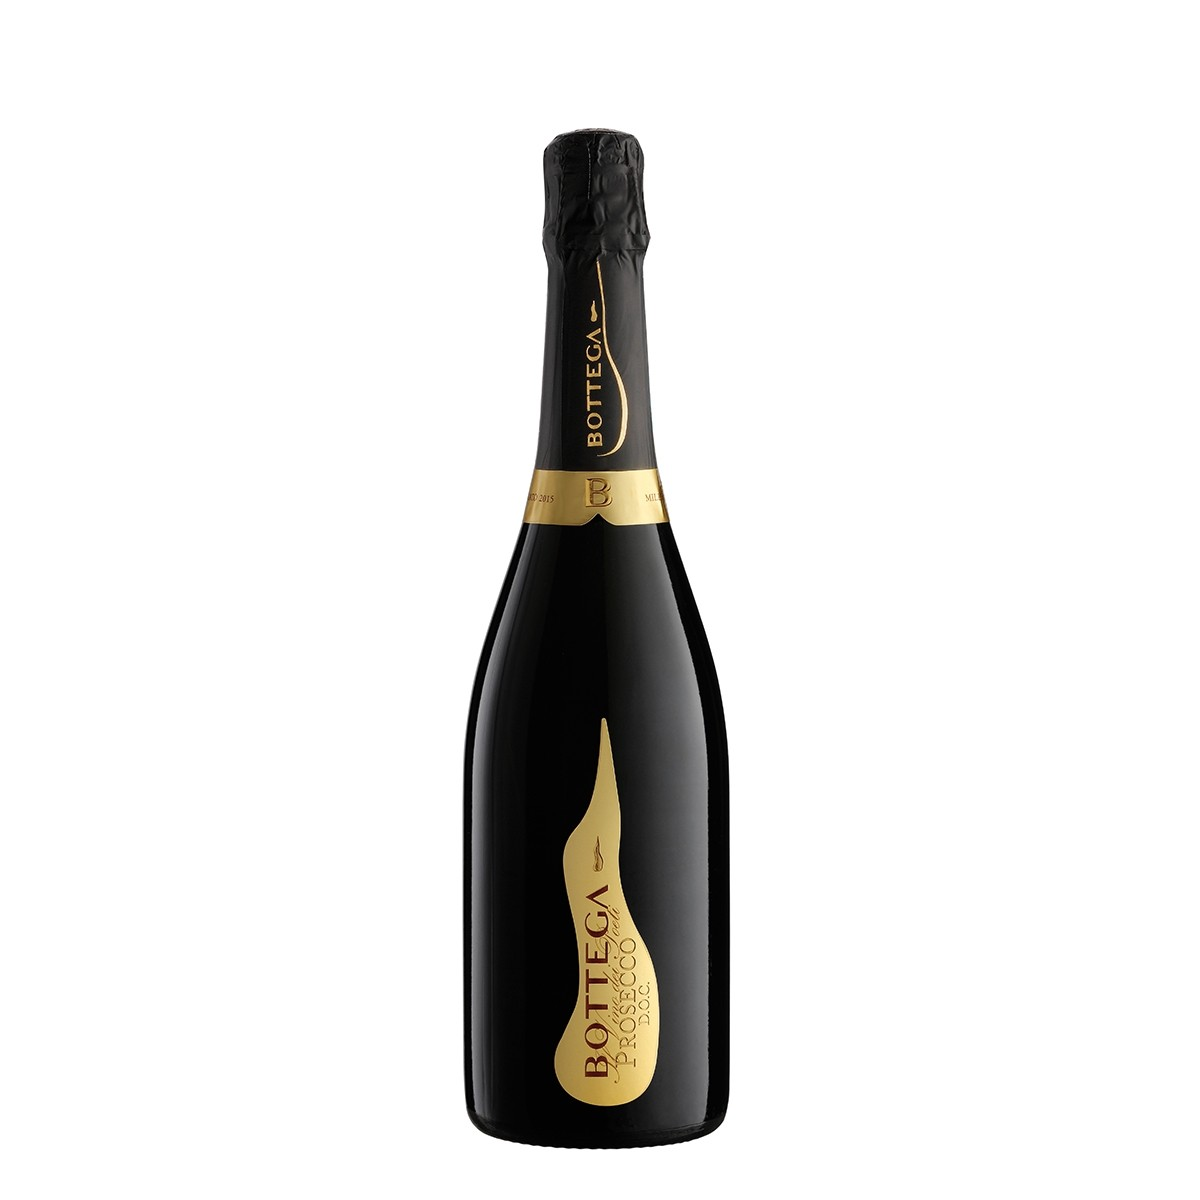 Bottega Poeti Prosecco Spumante 750 ml